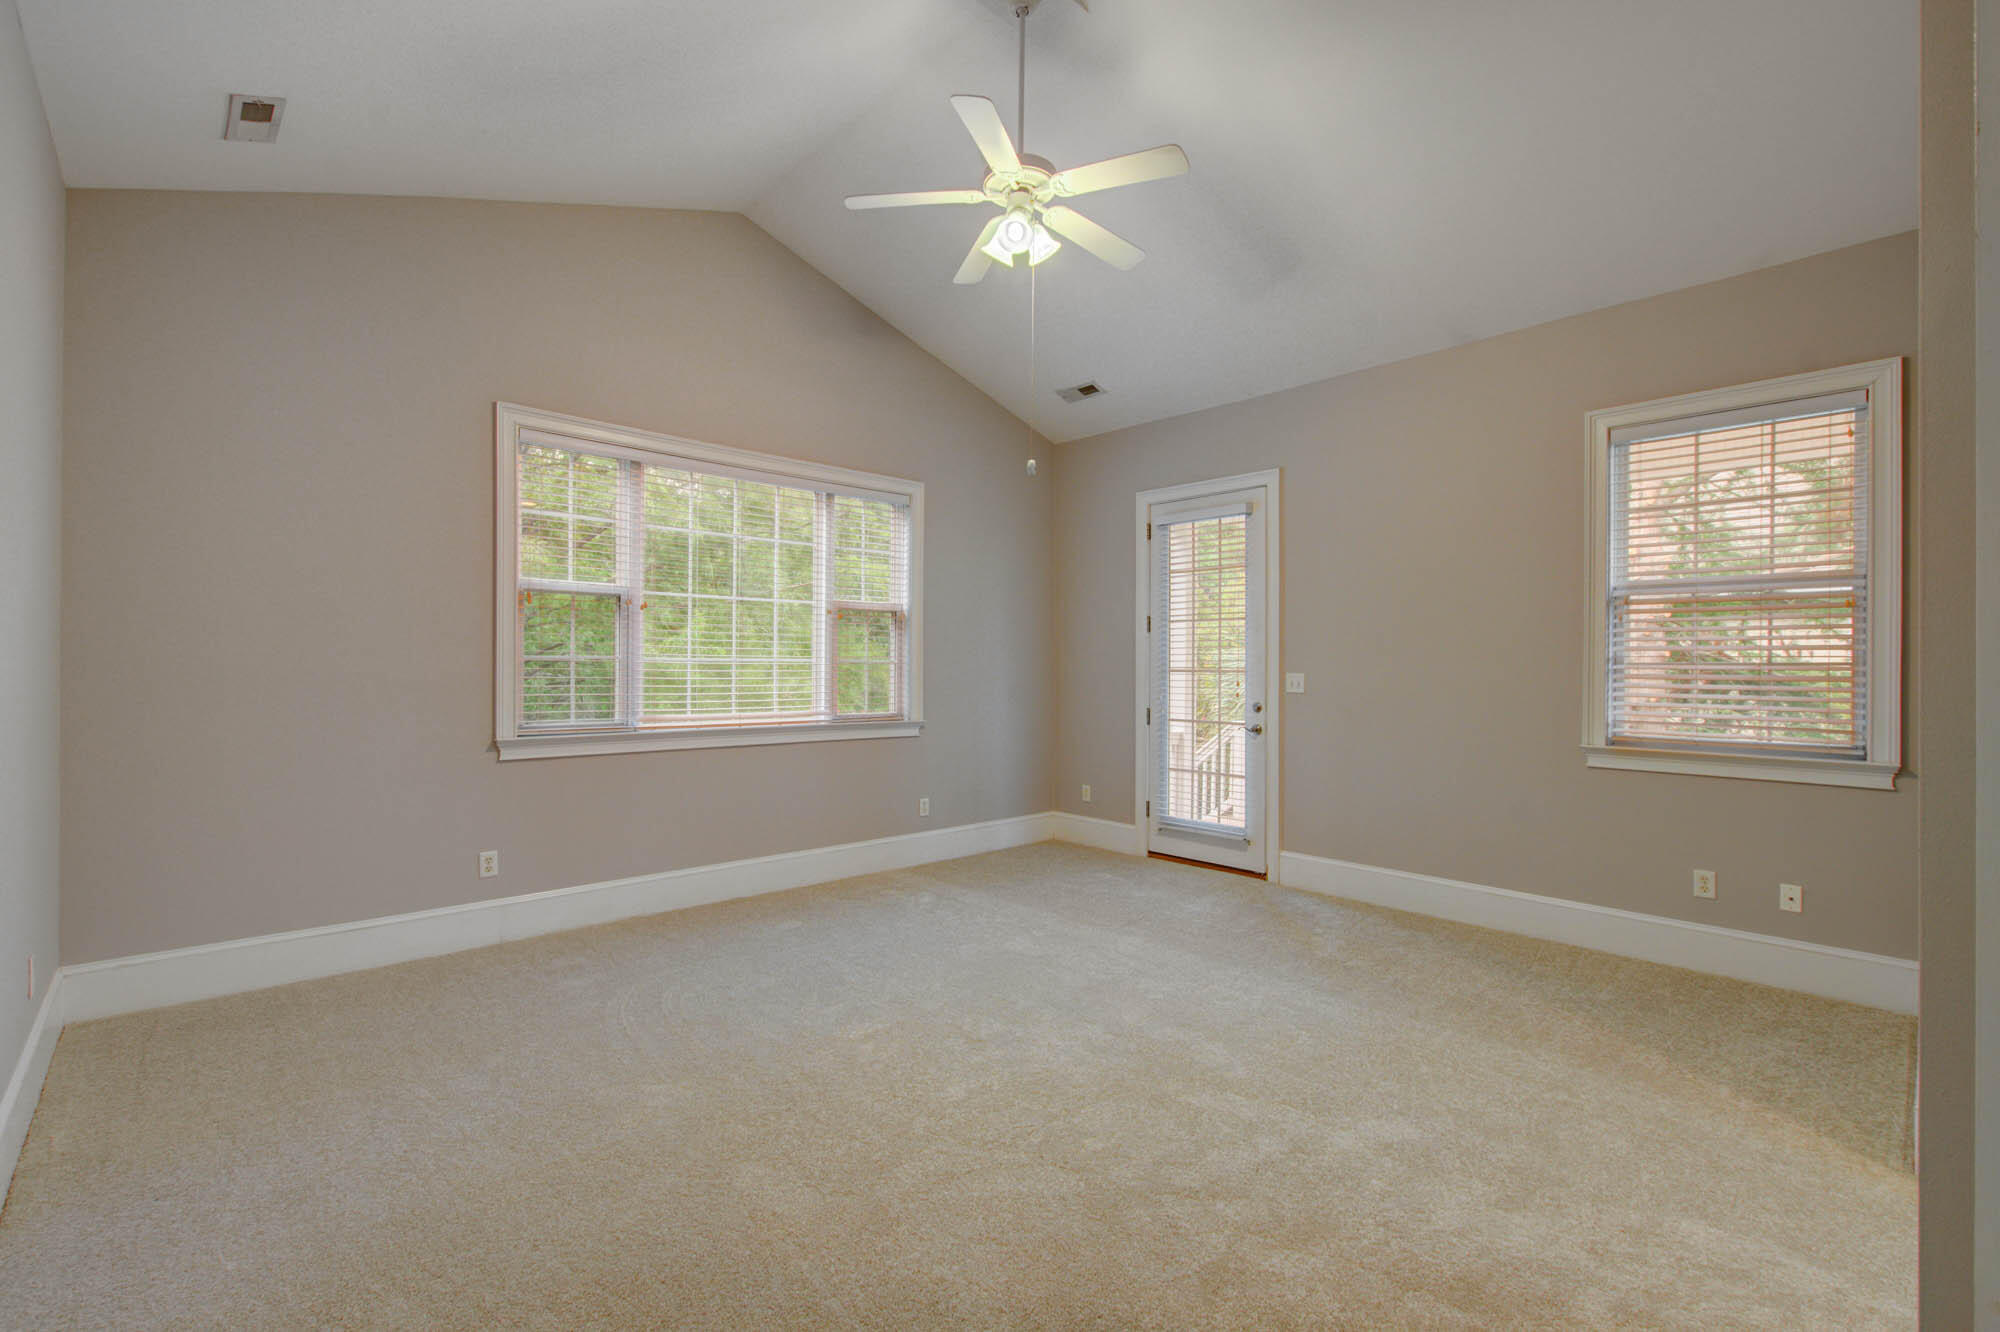 Rivertowne Country Club Homes For Sale - 1741 Rivertowne Country Club, Mount Pleasant, SC - 26